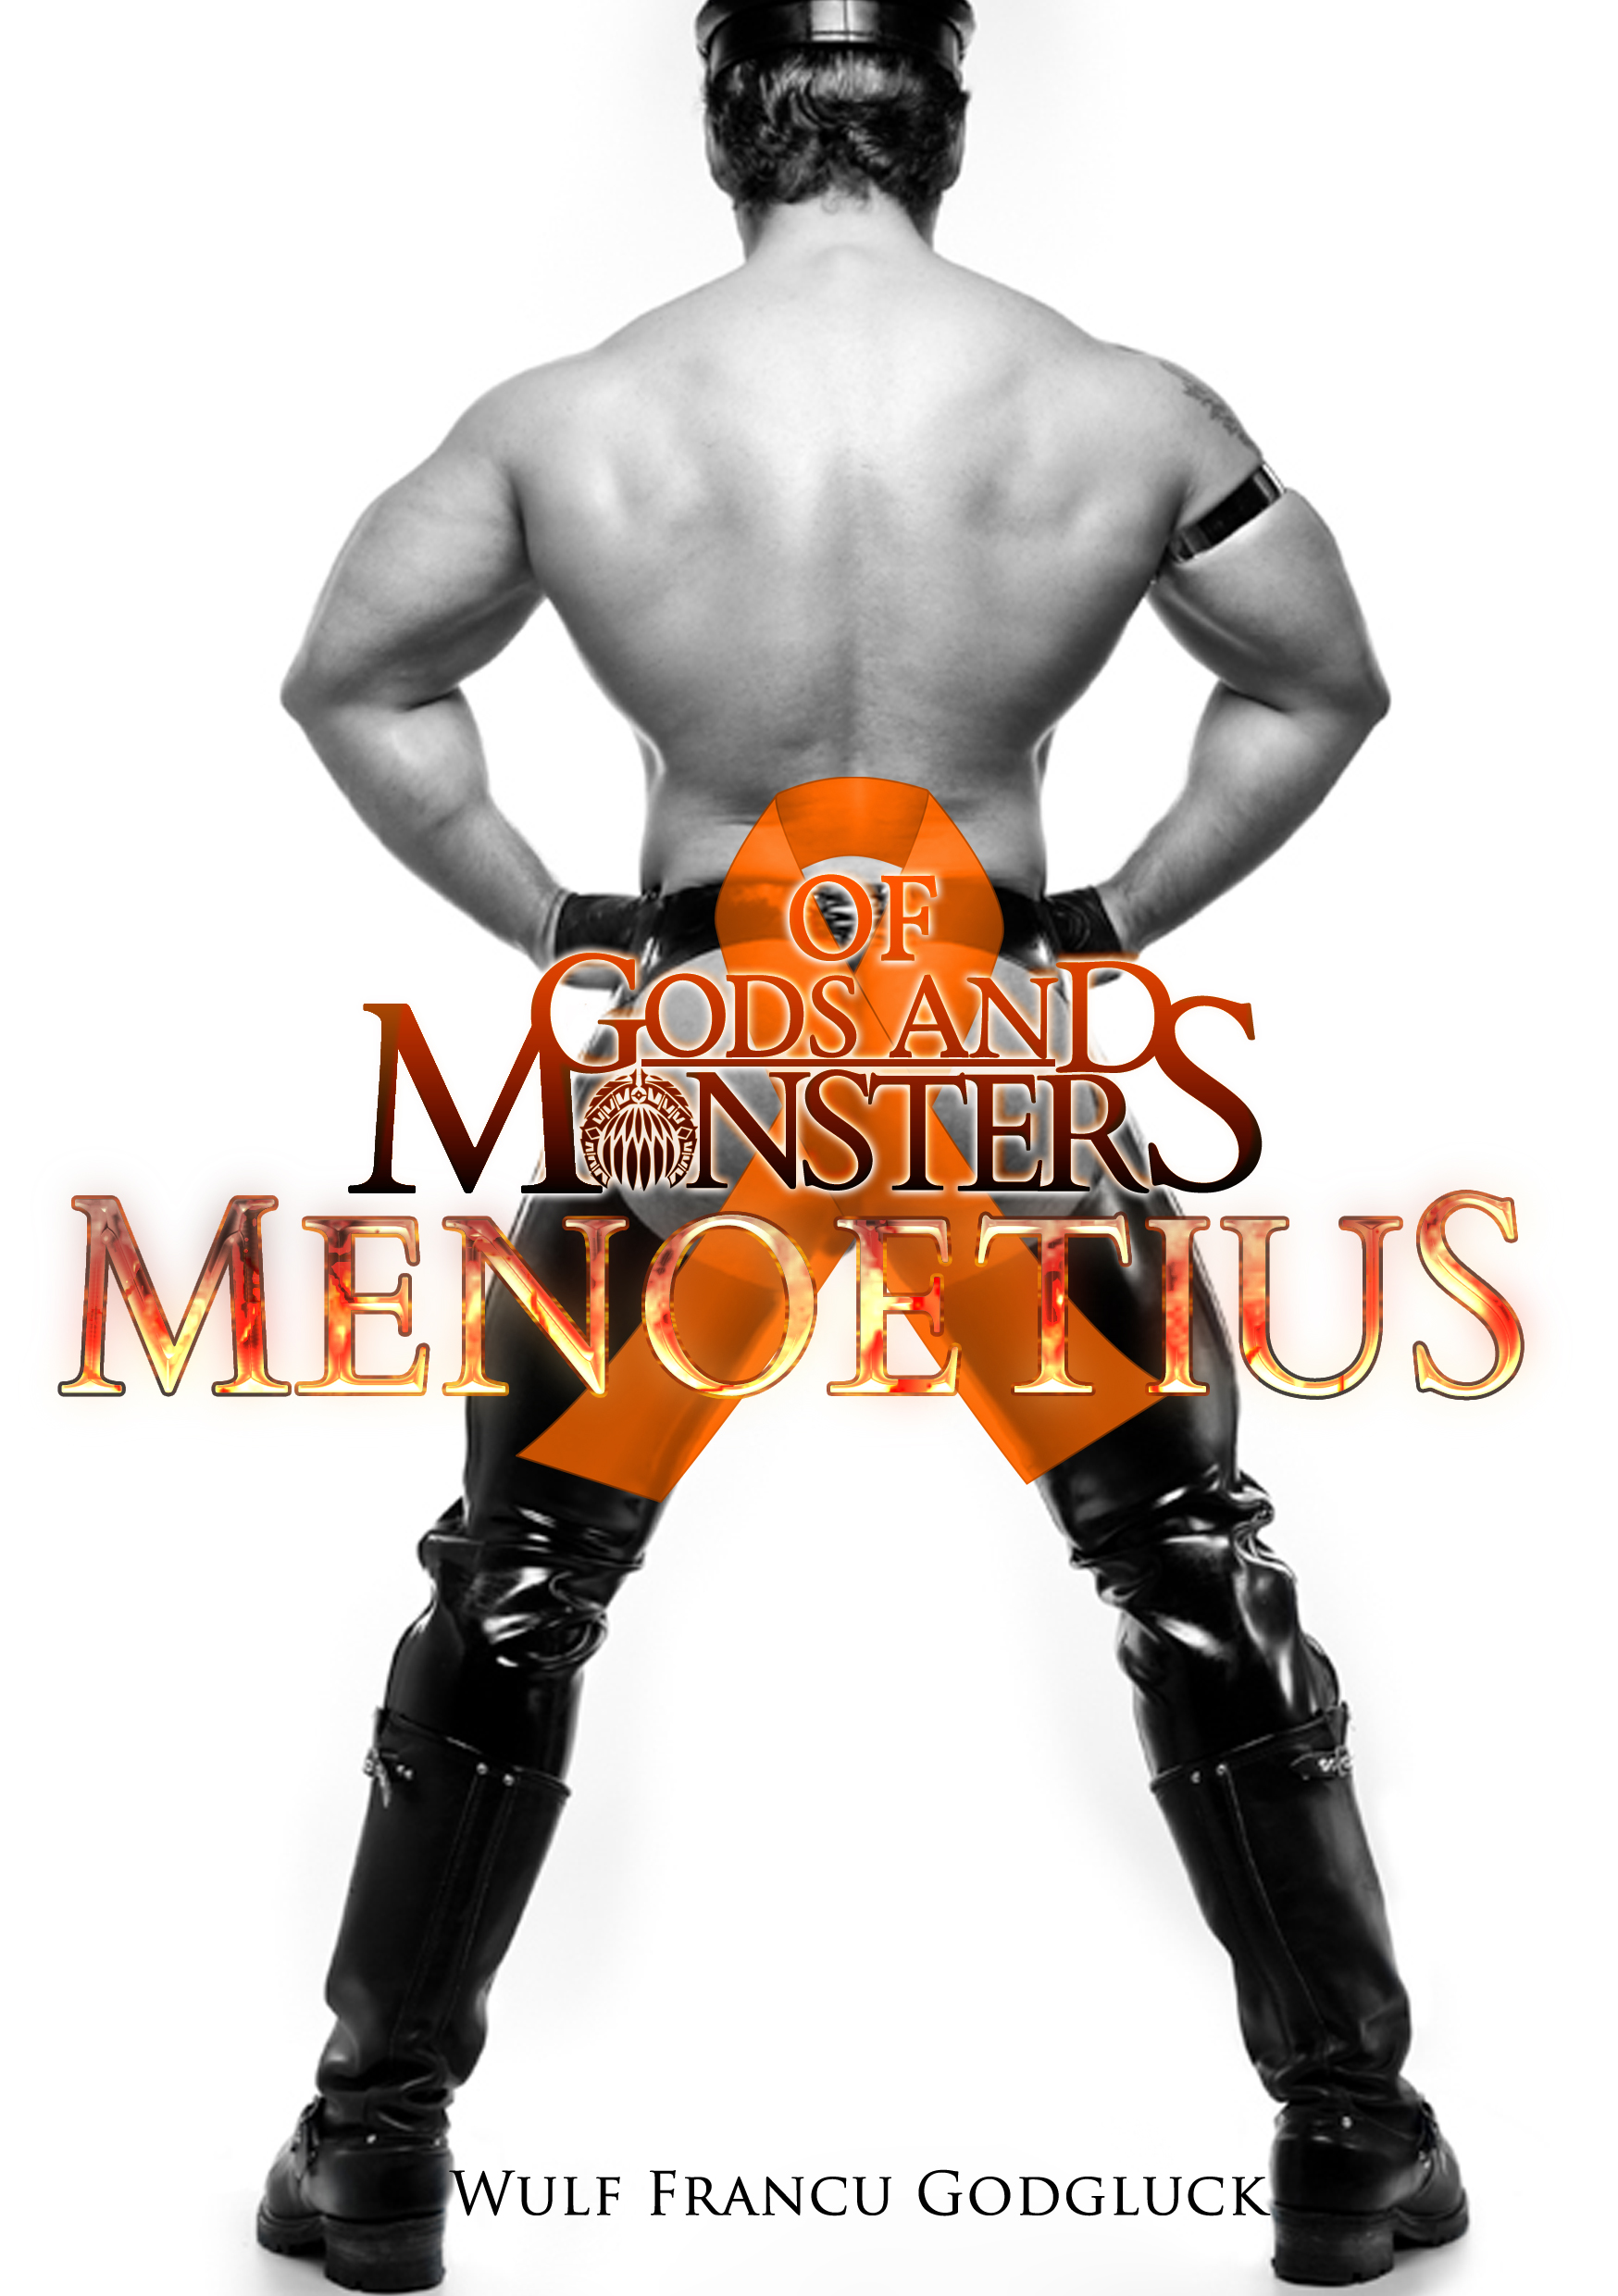 Smashwords – Of Gods and Monsters: Menoetius – a book by Wulf Francu